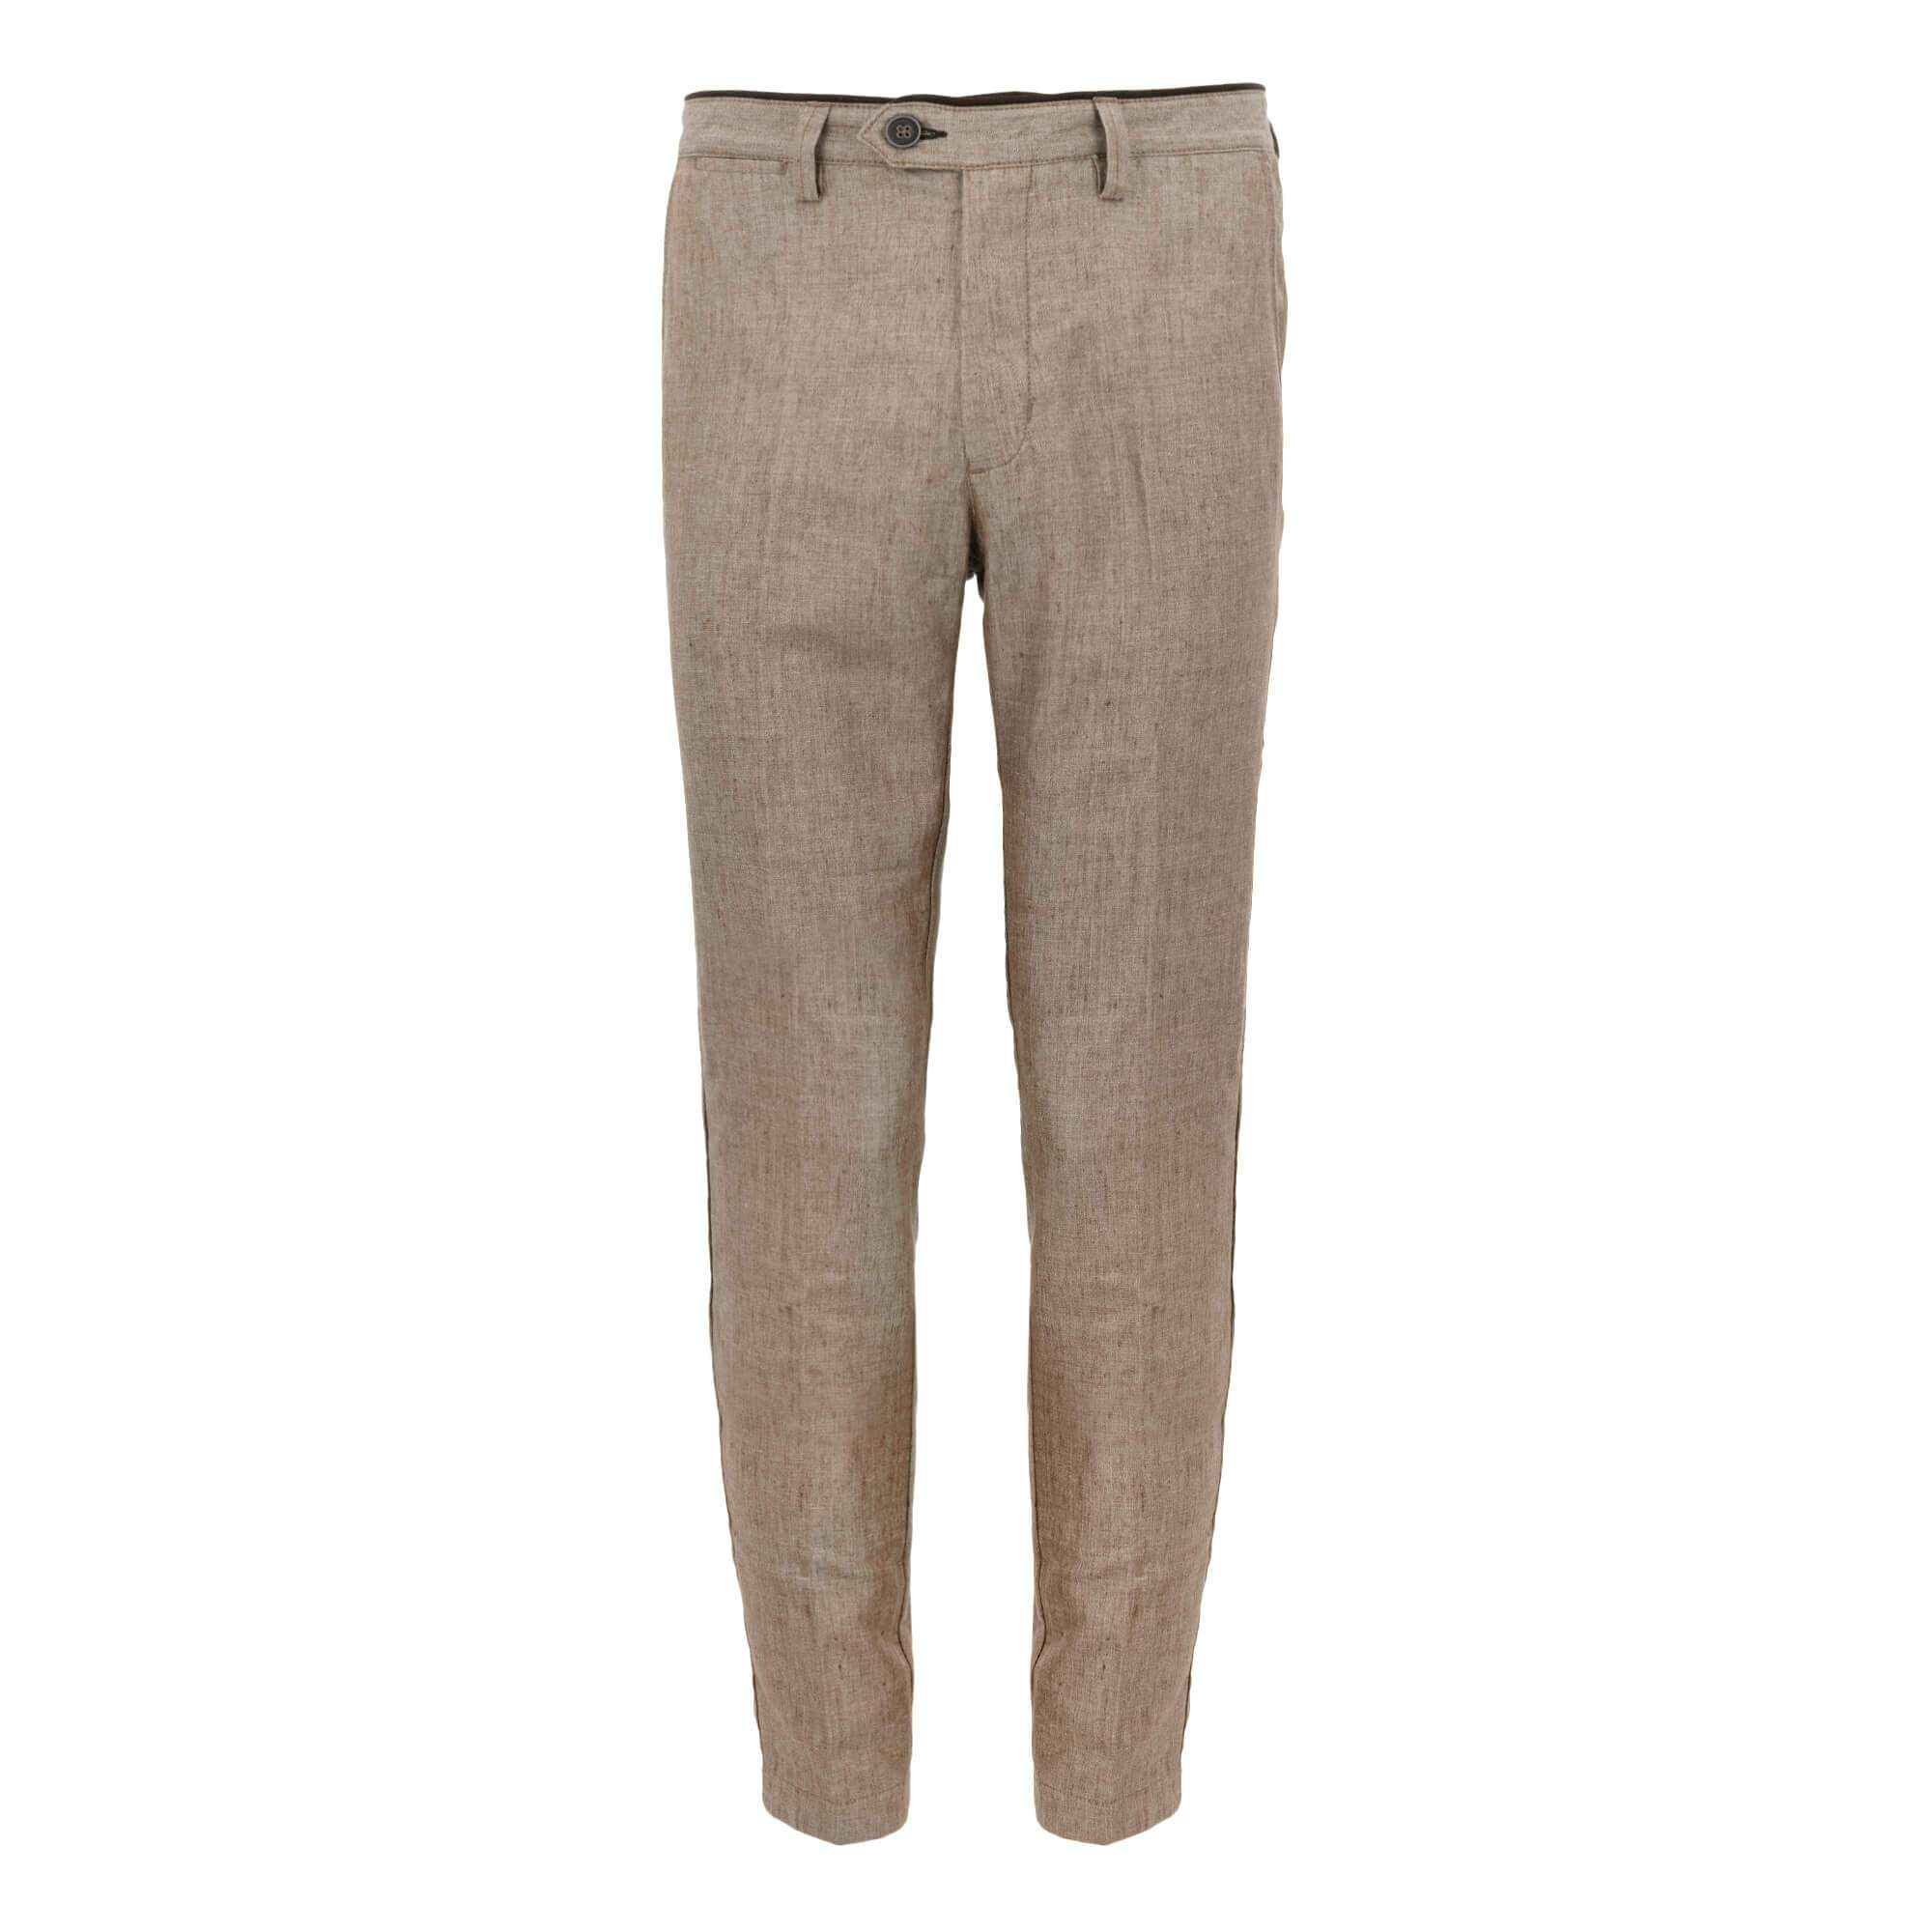 Pantalón chino regular fit 911119/81